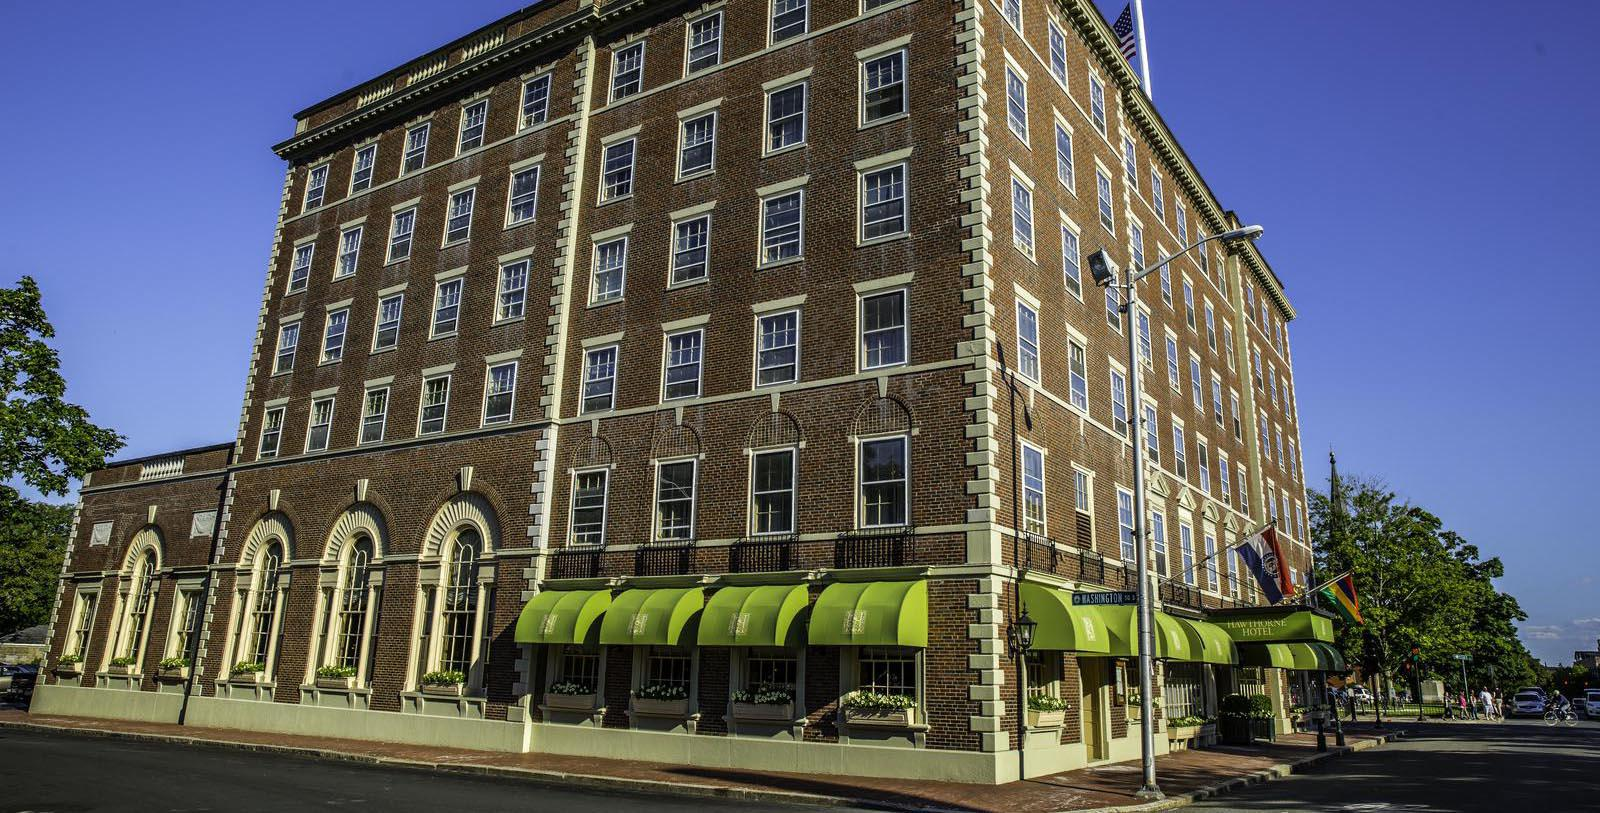 Image of hotel exterior Hawthorne Hotel, 1925, Member of Historic Hotels of America, in Salem, Massachusetts, Special Offers, Discounted Rates, Families, Romantic Escape, Honeymoons, Anniversaries, Reunions